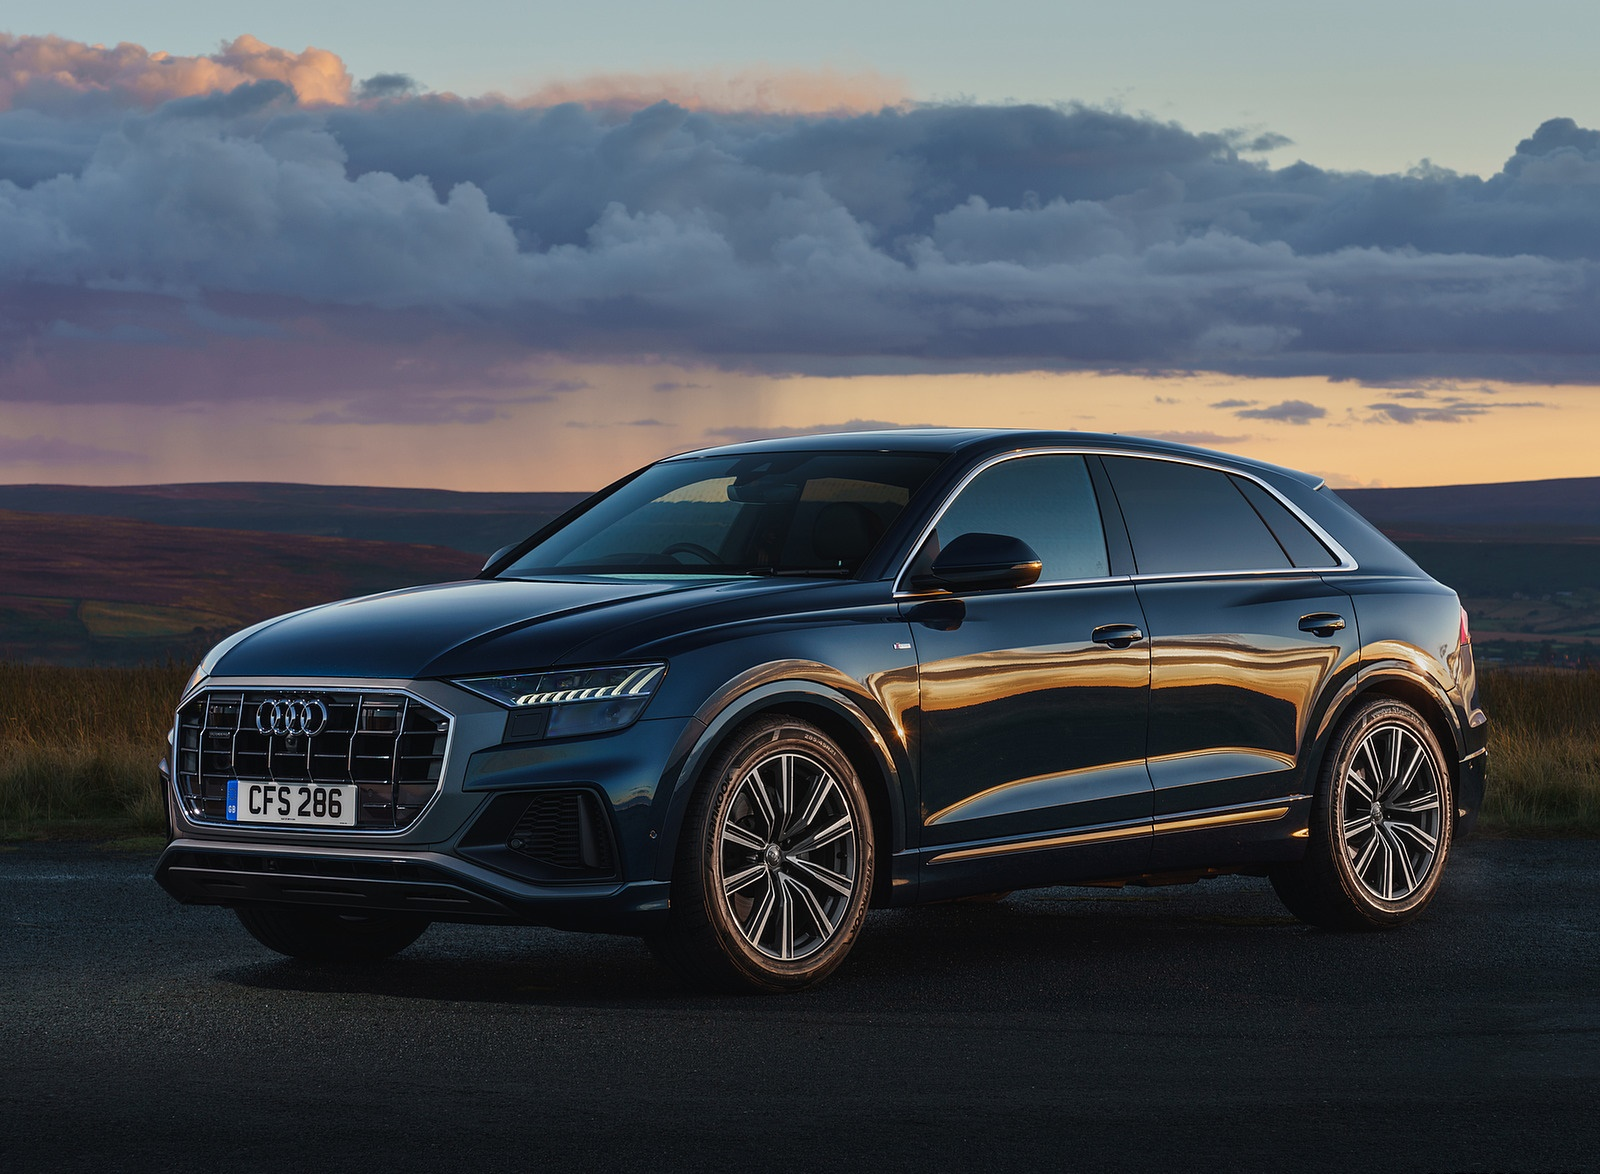 2019 Audi Q8 S Line 50 TDI Quattro (UK-Spec) Front Three-Quarter Wallpaper (9)